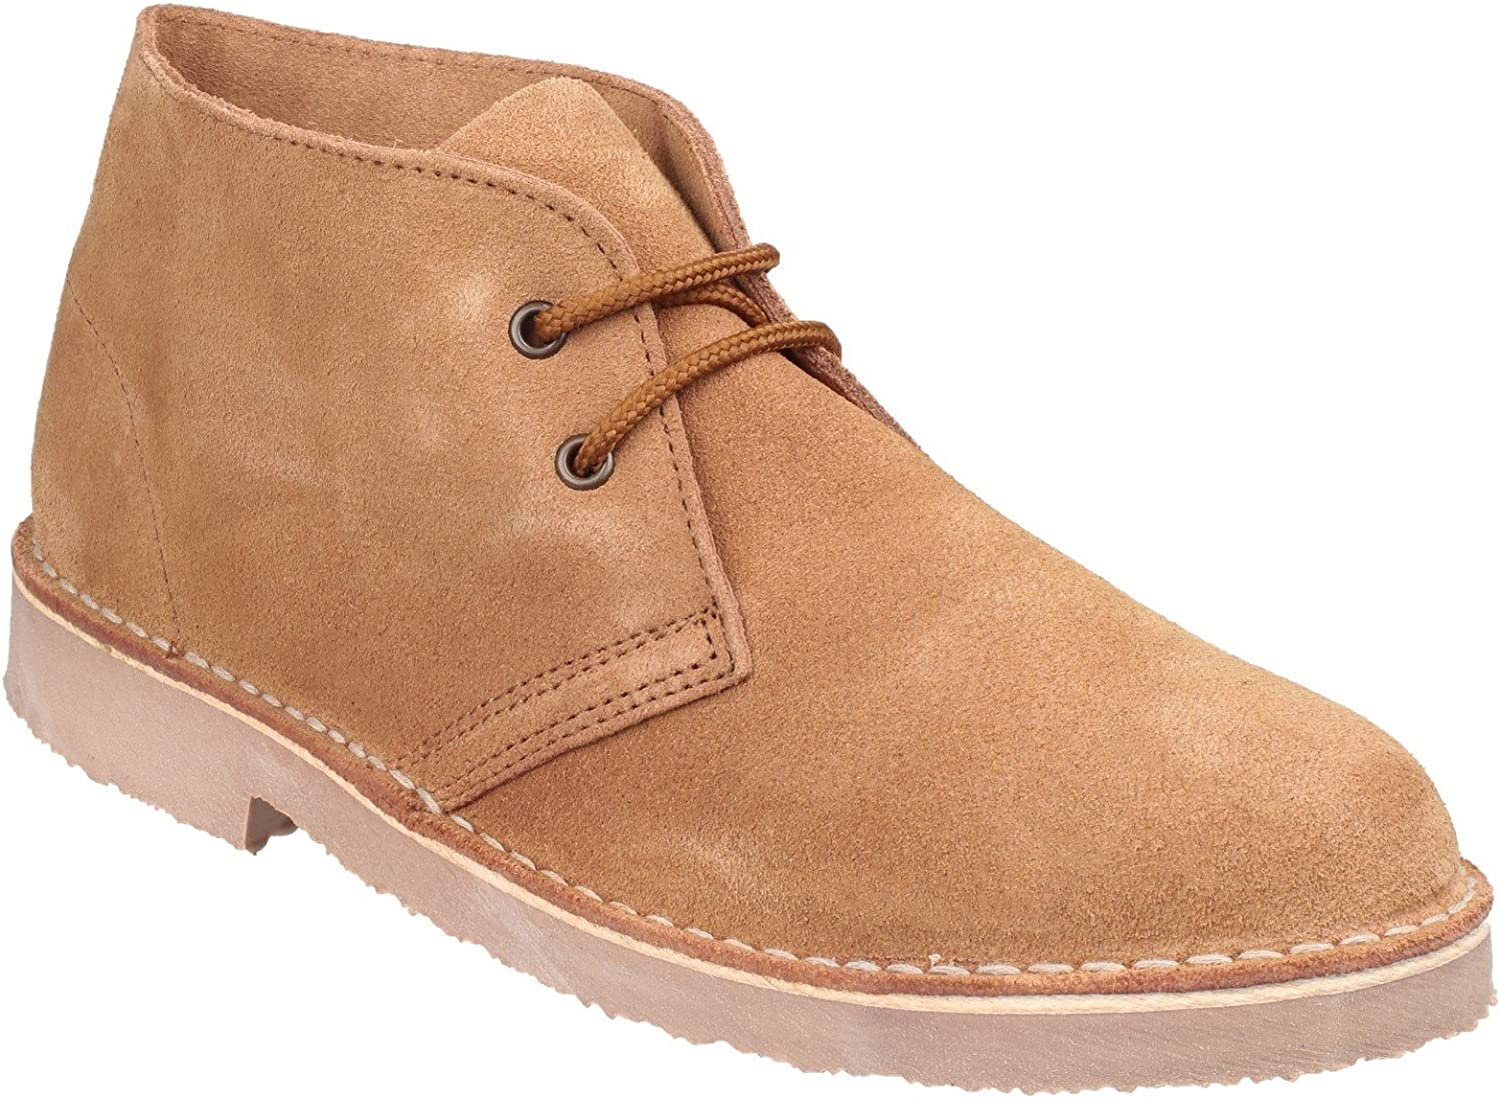 SAHARA Unisex Suede Fort Worth Import Mall Desert Boots Leather